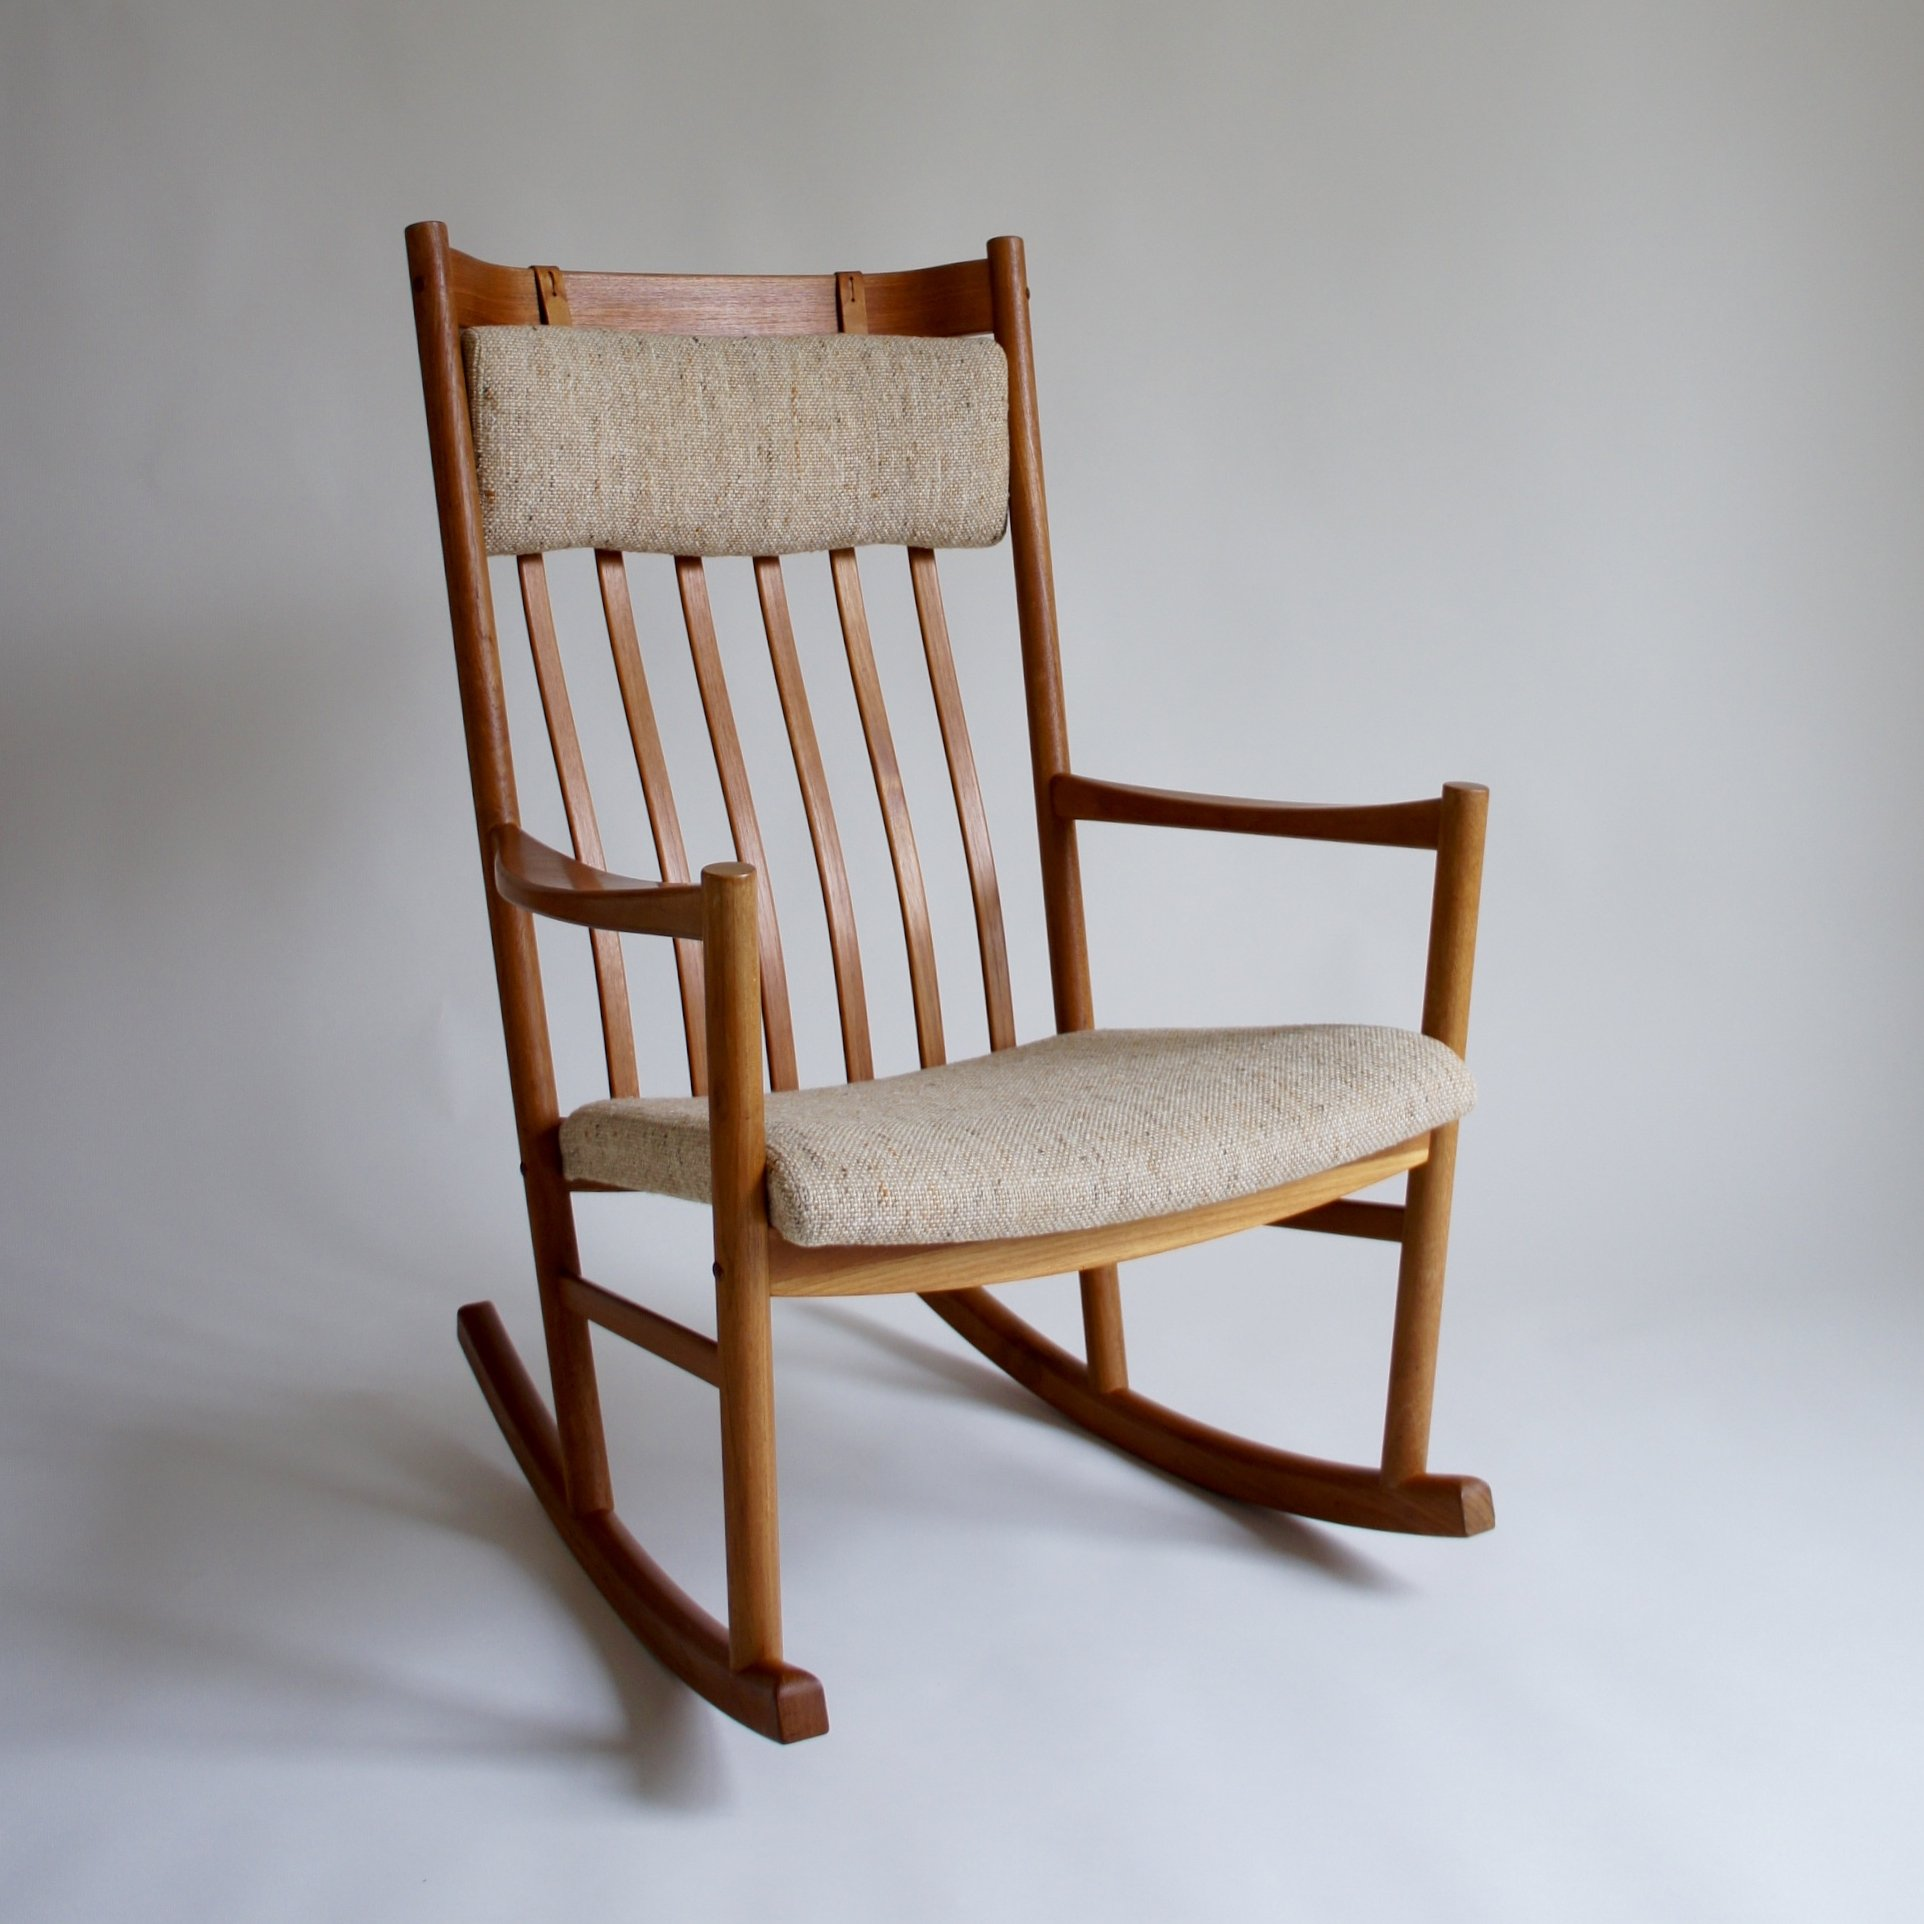 Tarm Stole Rocking Chair By Hans Wegner